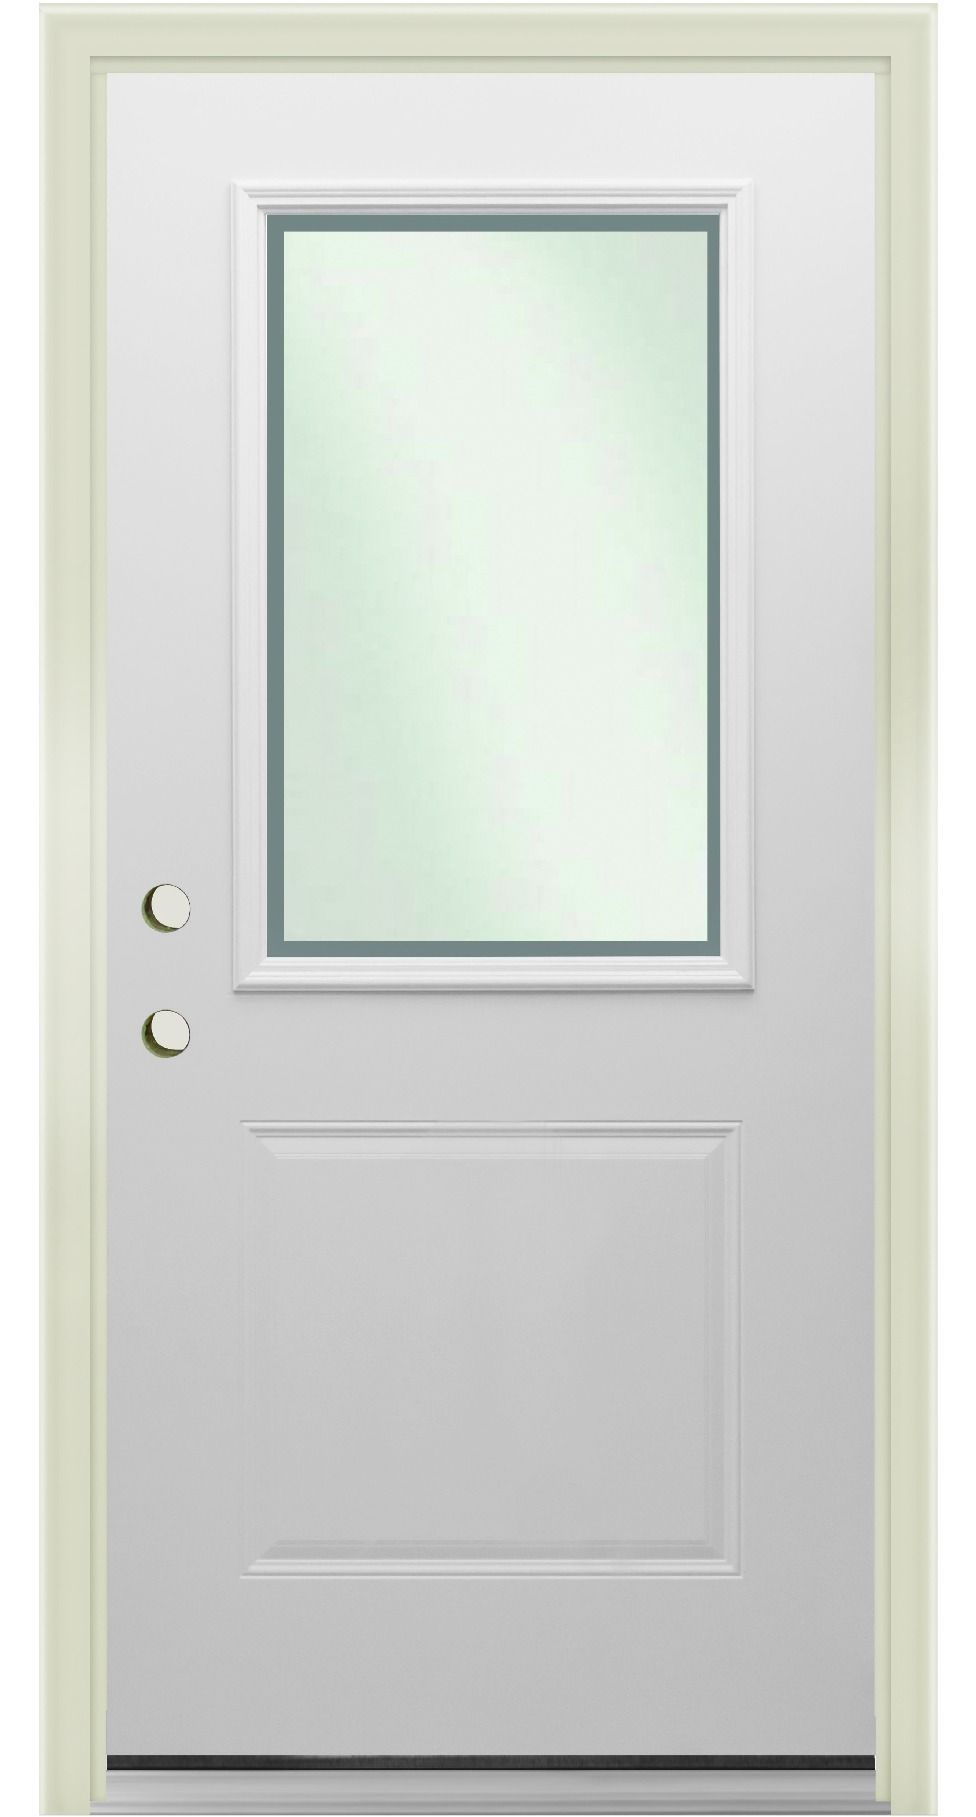 Design Or Buy Your This Door Online At Www Menards Com Doorstore Steel Doors Exterior Exterior Doors Doors Online